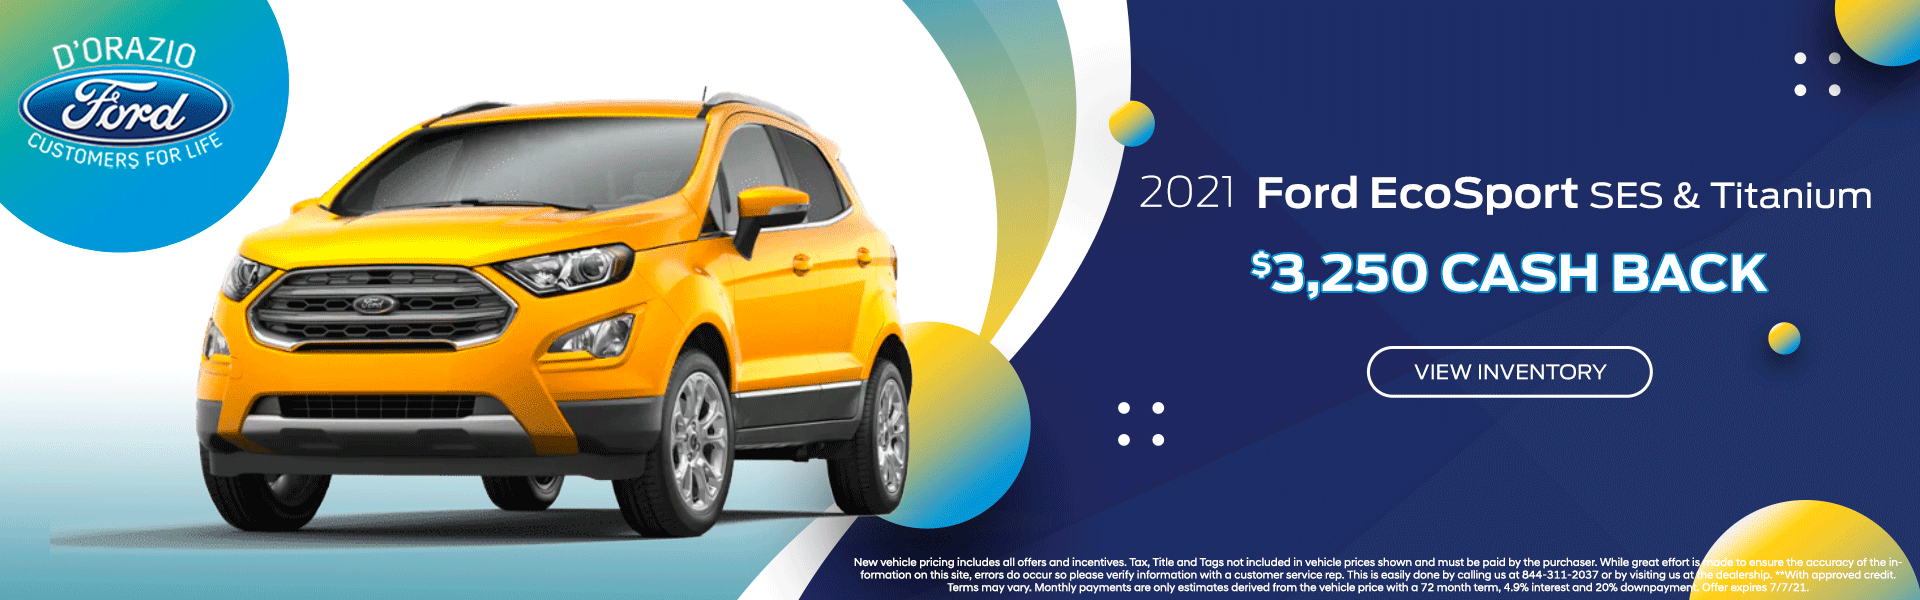 New 2021 Ford EcoSport